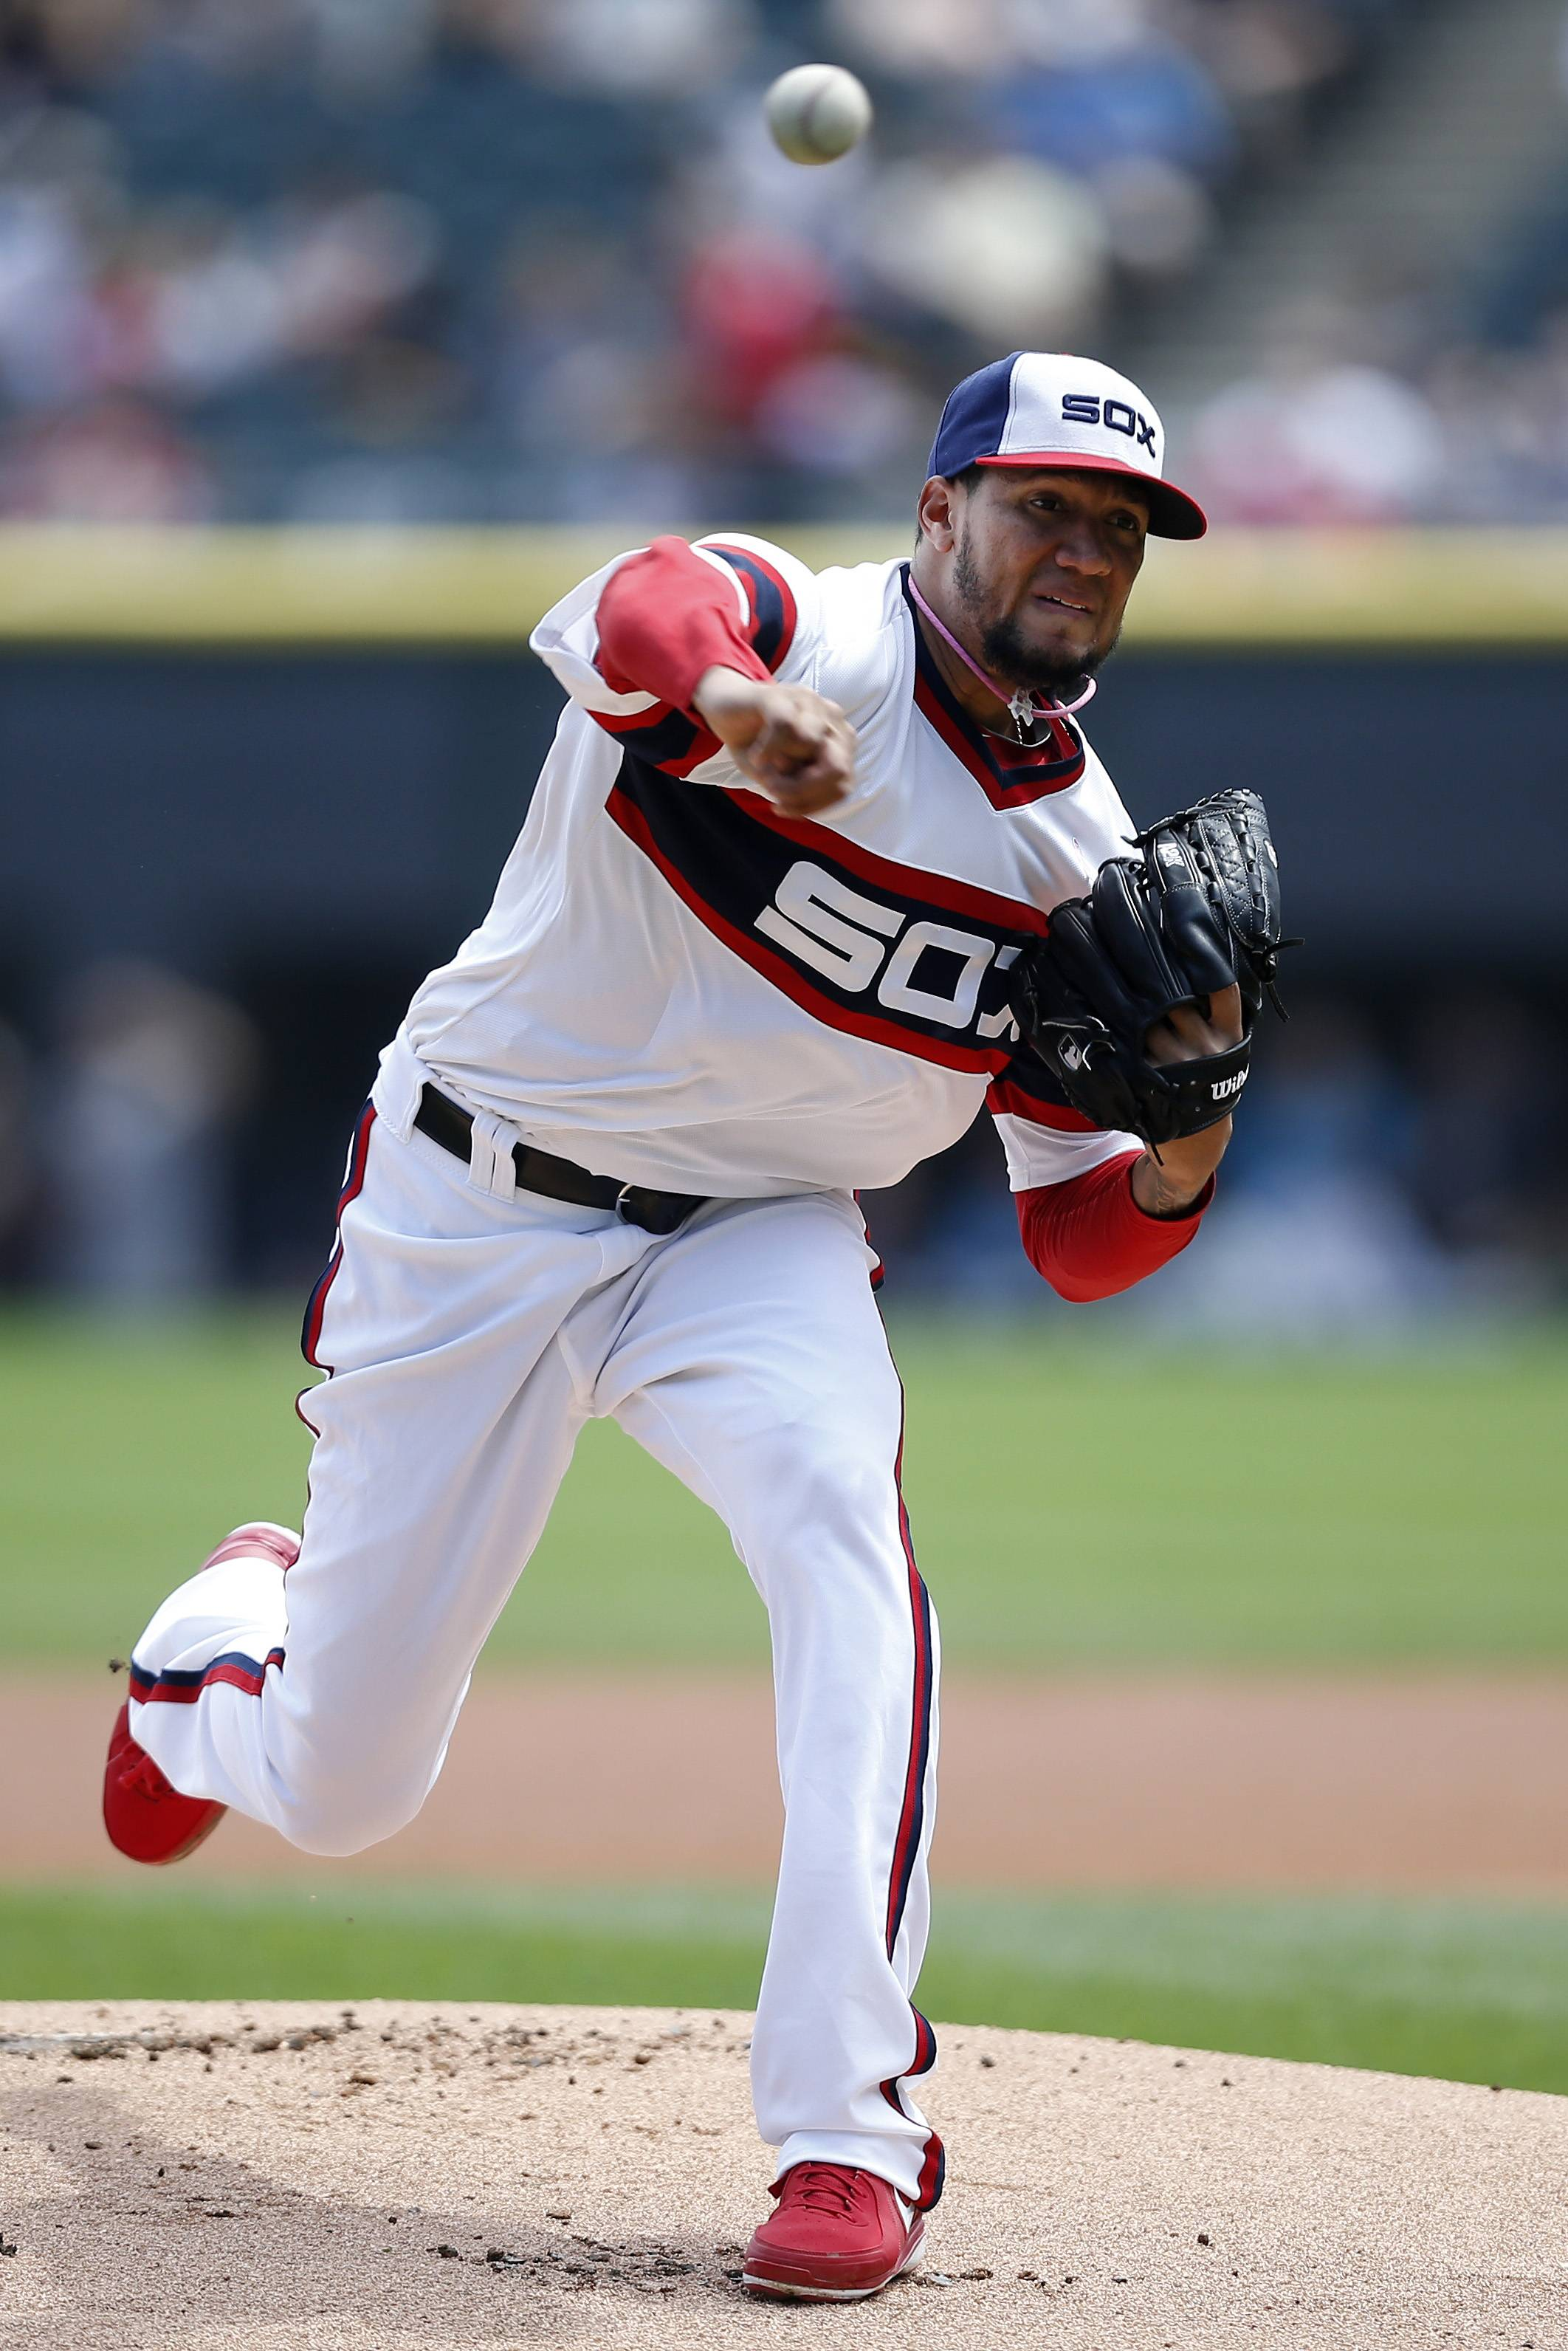 Hector Noesi, who began the season in the bullpen, delivered a quality start Sunday against the Diamondbacks at U.S. Cellular Field.